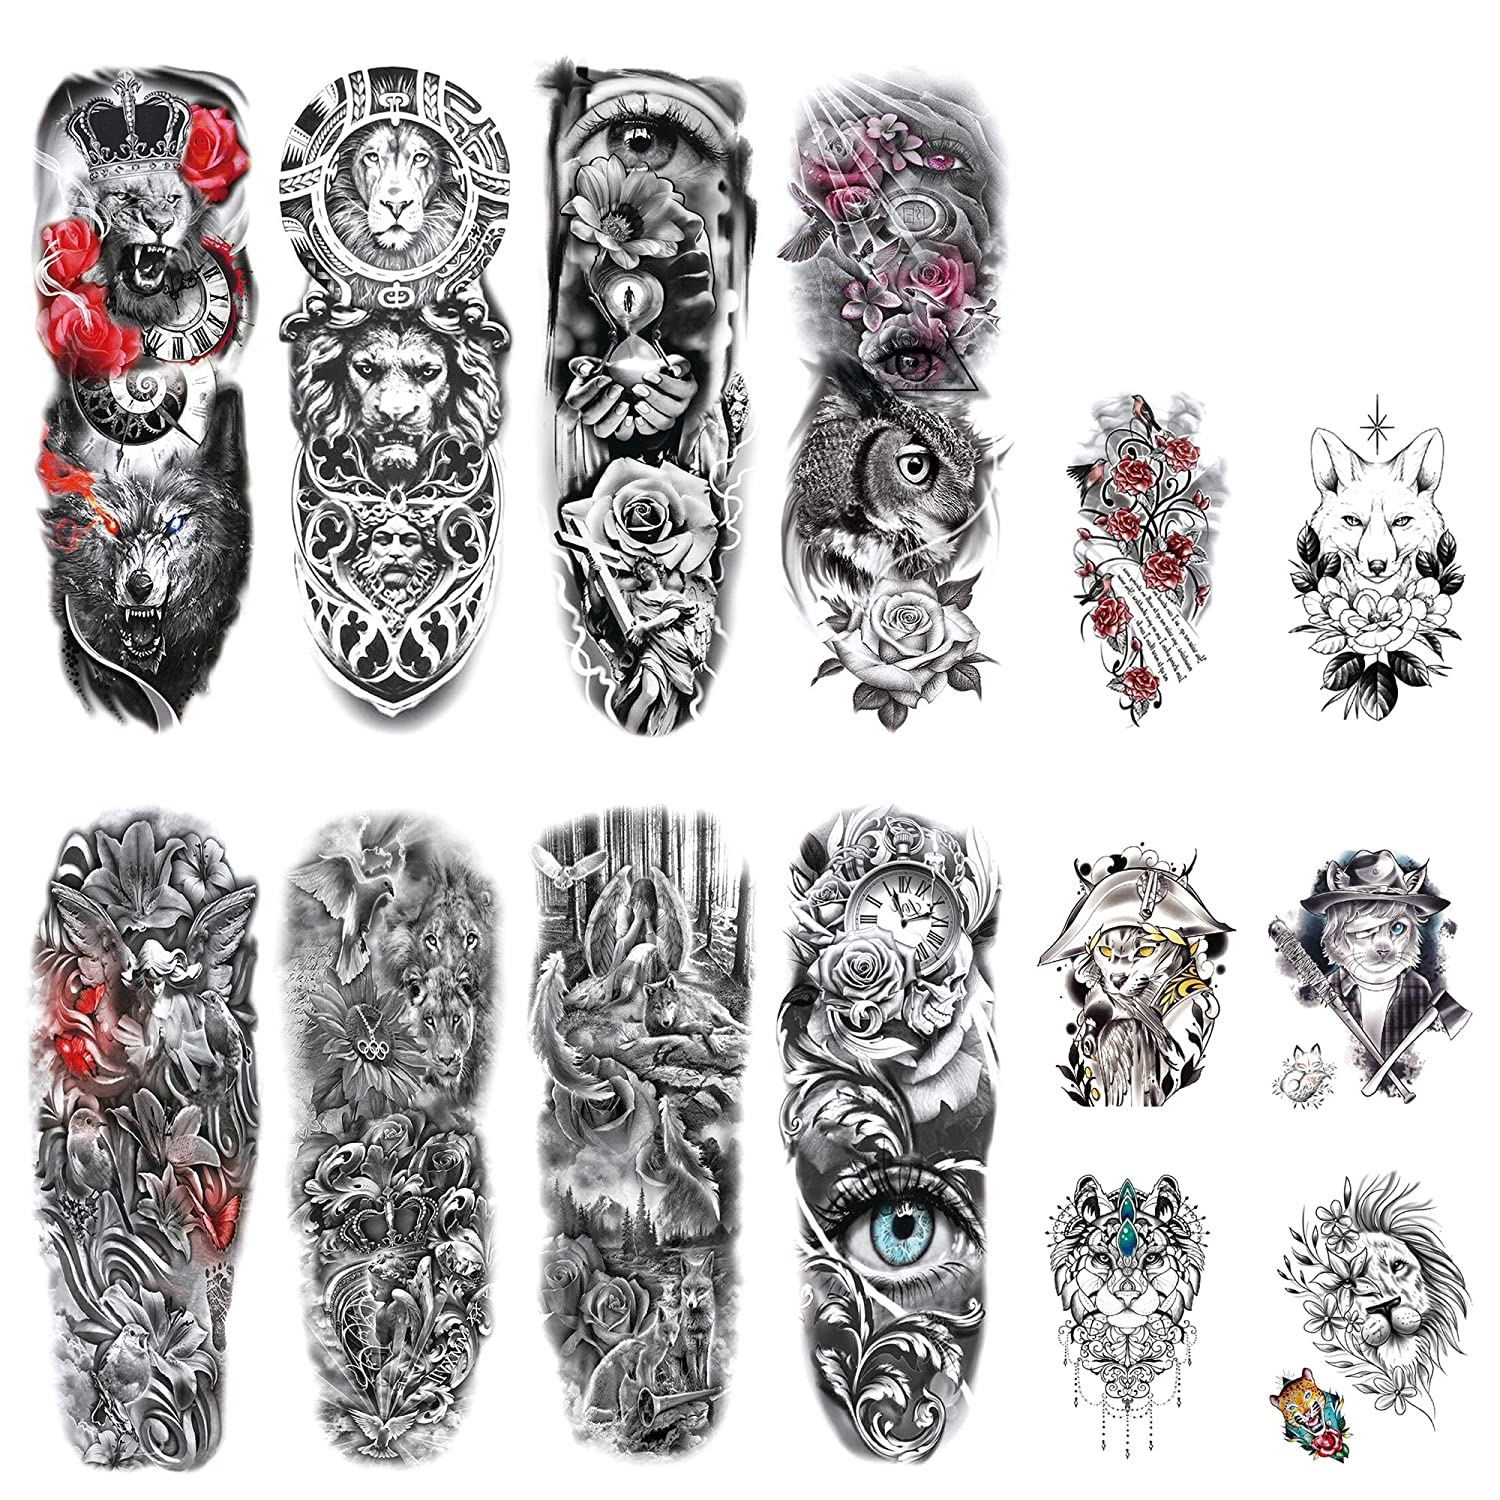 DaLin Extra Large Full Arm Temporary Tattoos and Half Arm Tattoo Sleeves for Men Women, 18 Sheets (Collection 9)